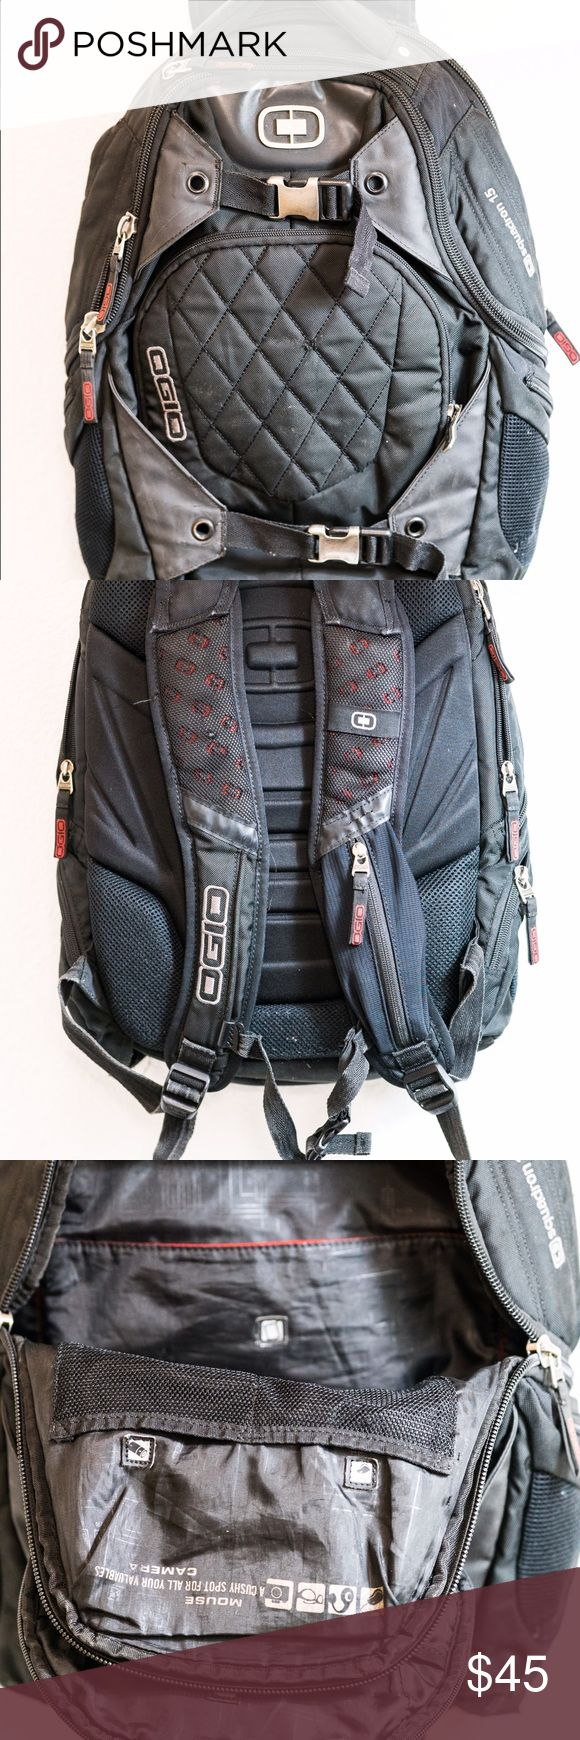 USED OGIO Sleek Backpack For sale is a used OGIO Backpack. Has a spot for laptop, tablet, iPhone, and sunglasses. Plenty of storage in these quality bags!! OGIO Bags Backpacks